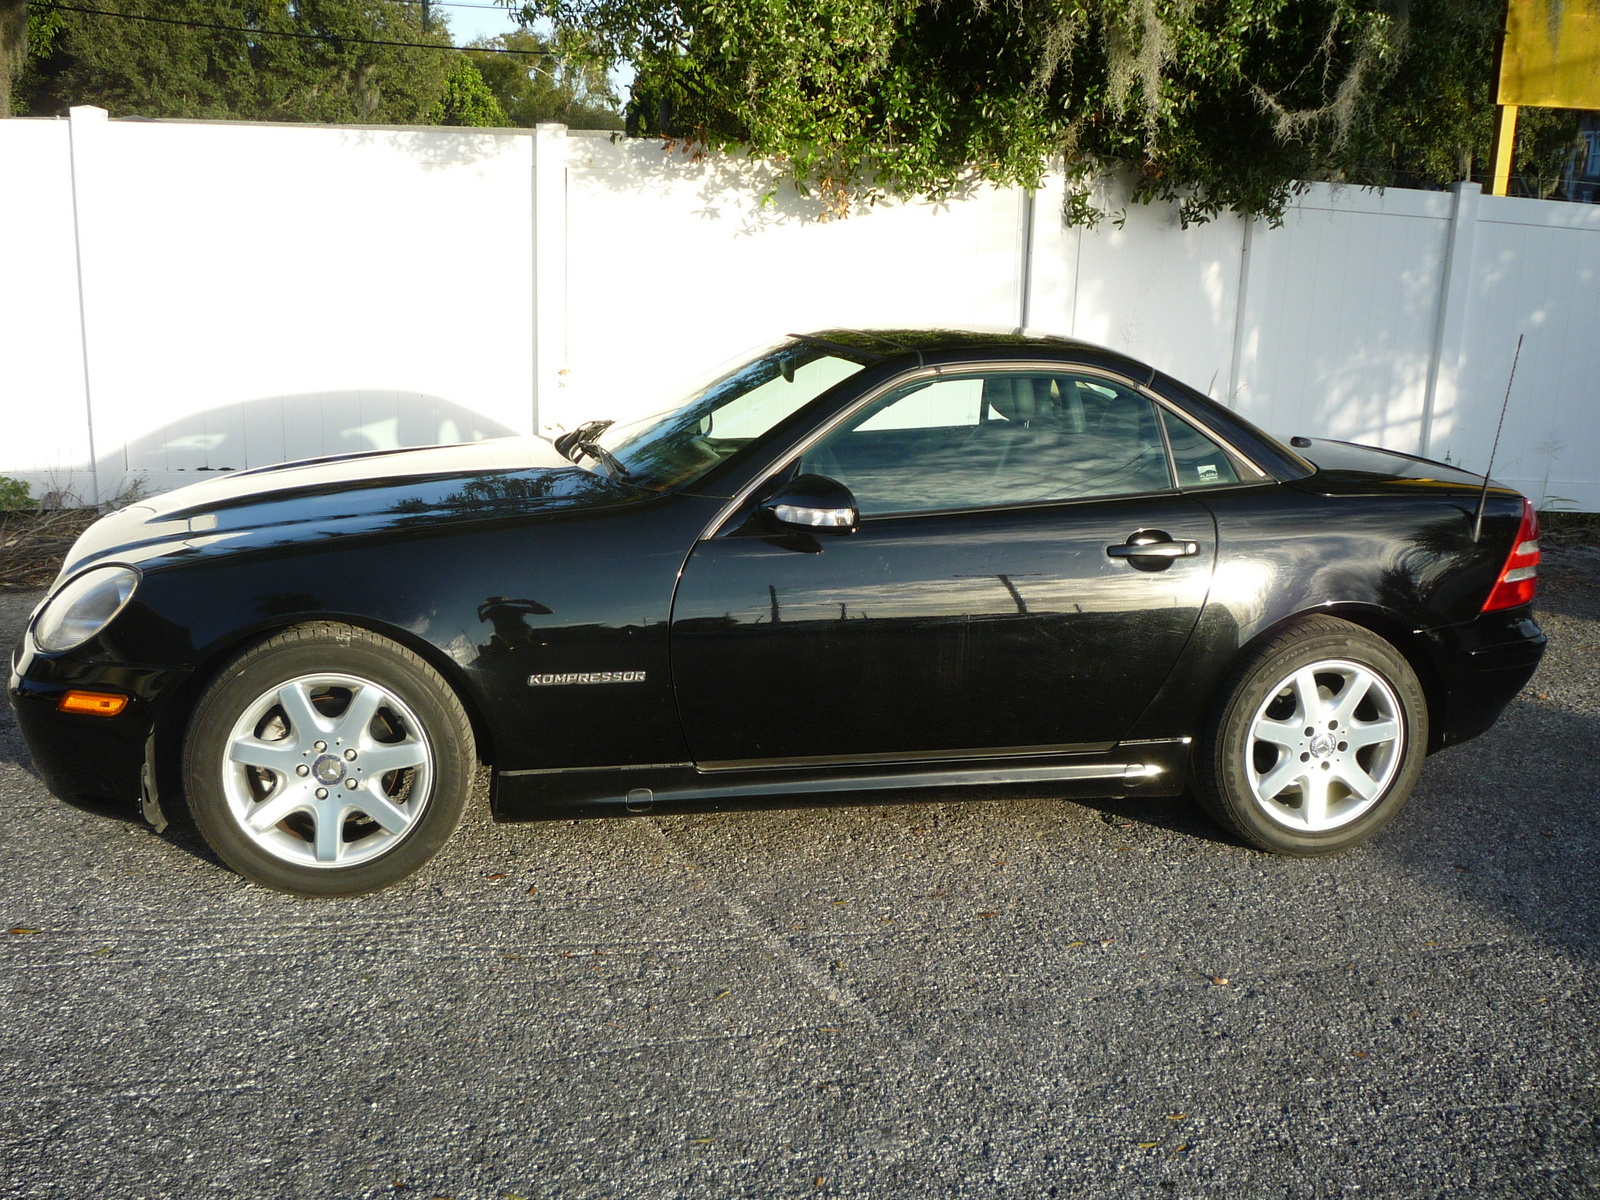 Used mercedes benz slk class for sale sarasota fl cargurus for Used mercedes benz for sale in florida